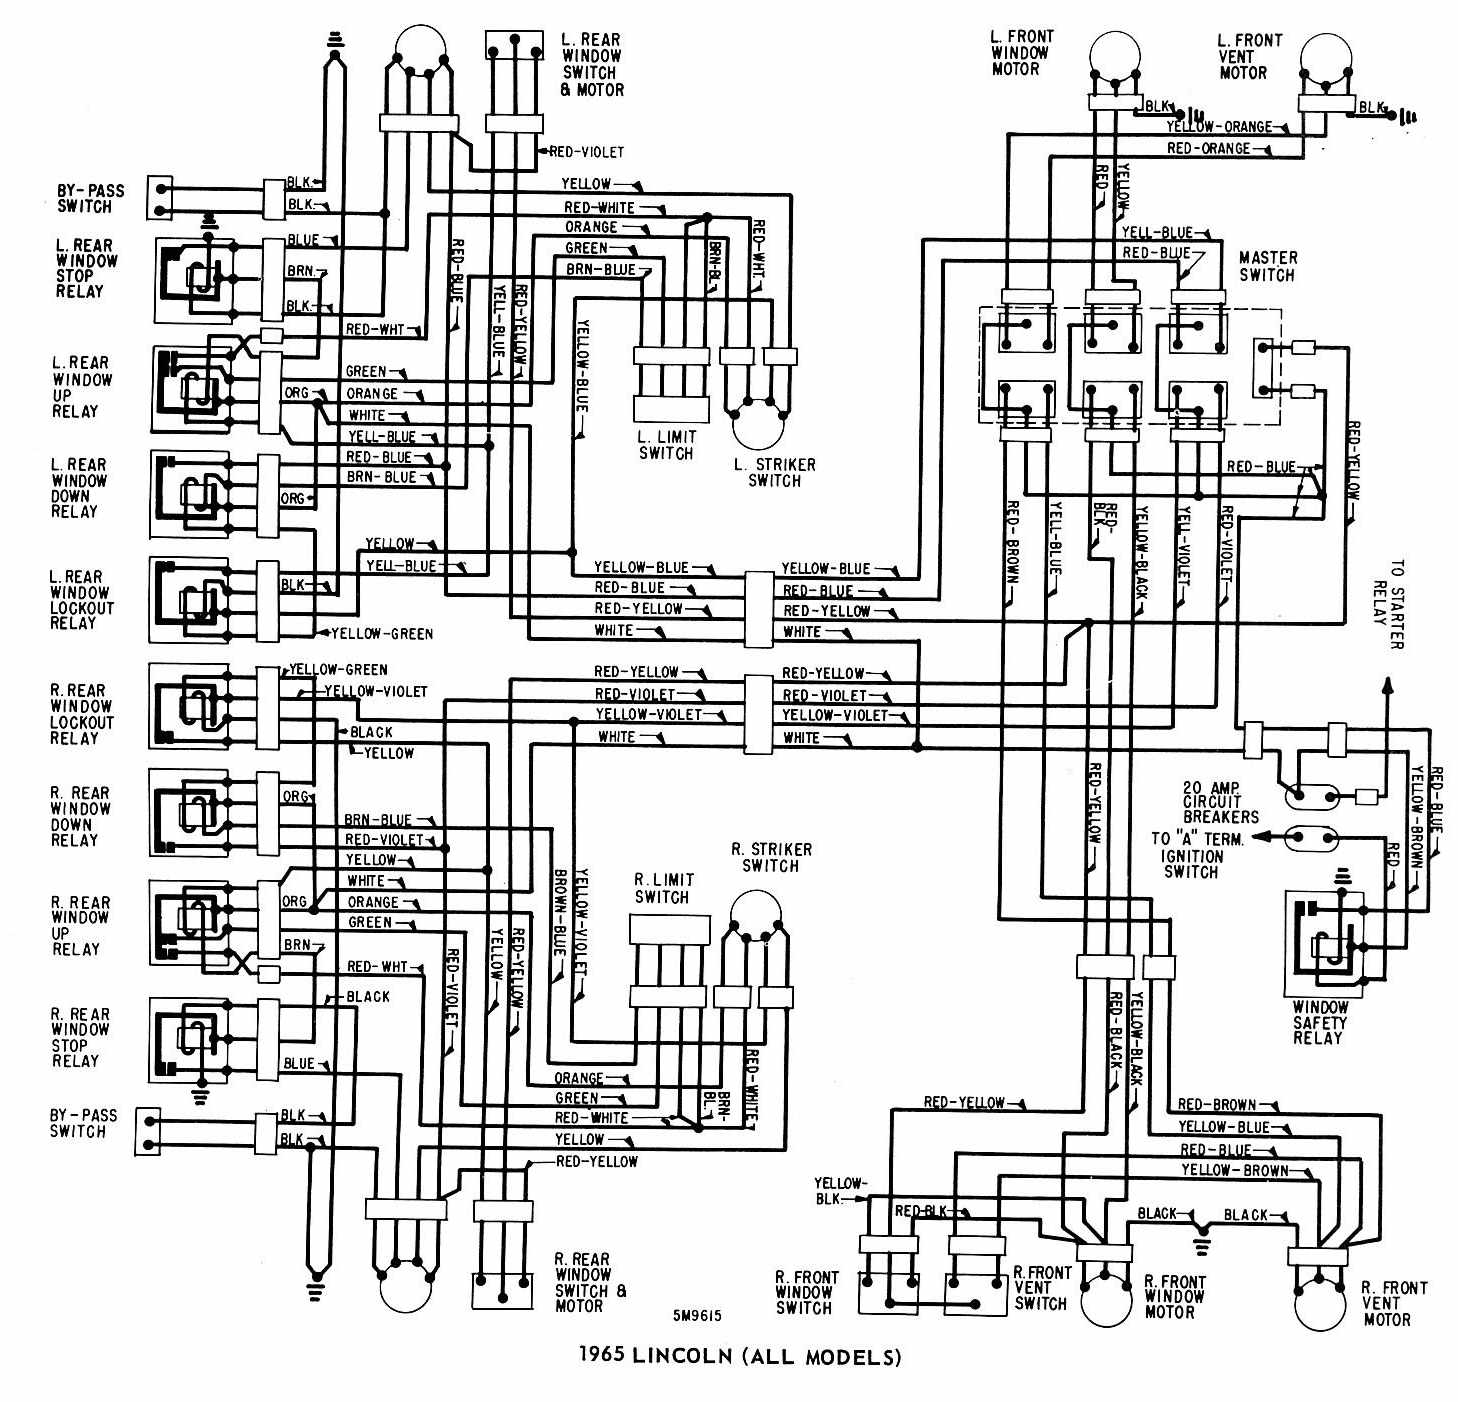 Renault Megane Window Switch Wiring Diagram - 2006 Gmc Topkick Wiring  Diagram - wire-diag.losdol2.jeanjaures37.fr | Renault Window Wiring Diagram |  | Wiring Diagram Resource